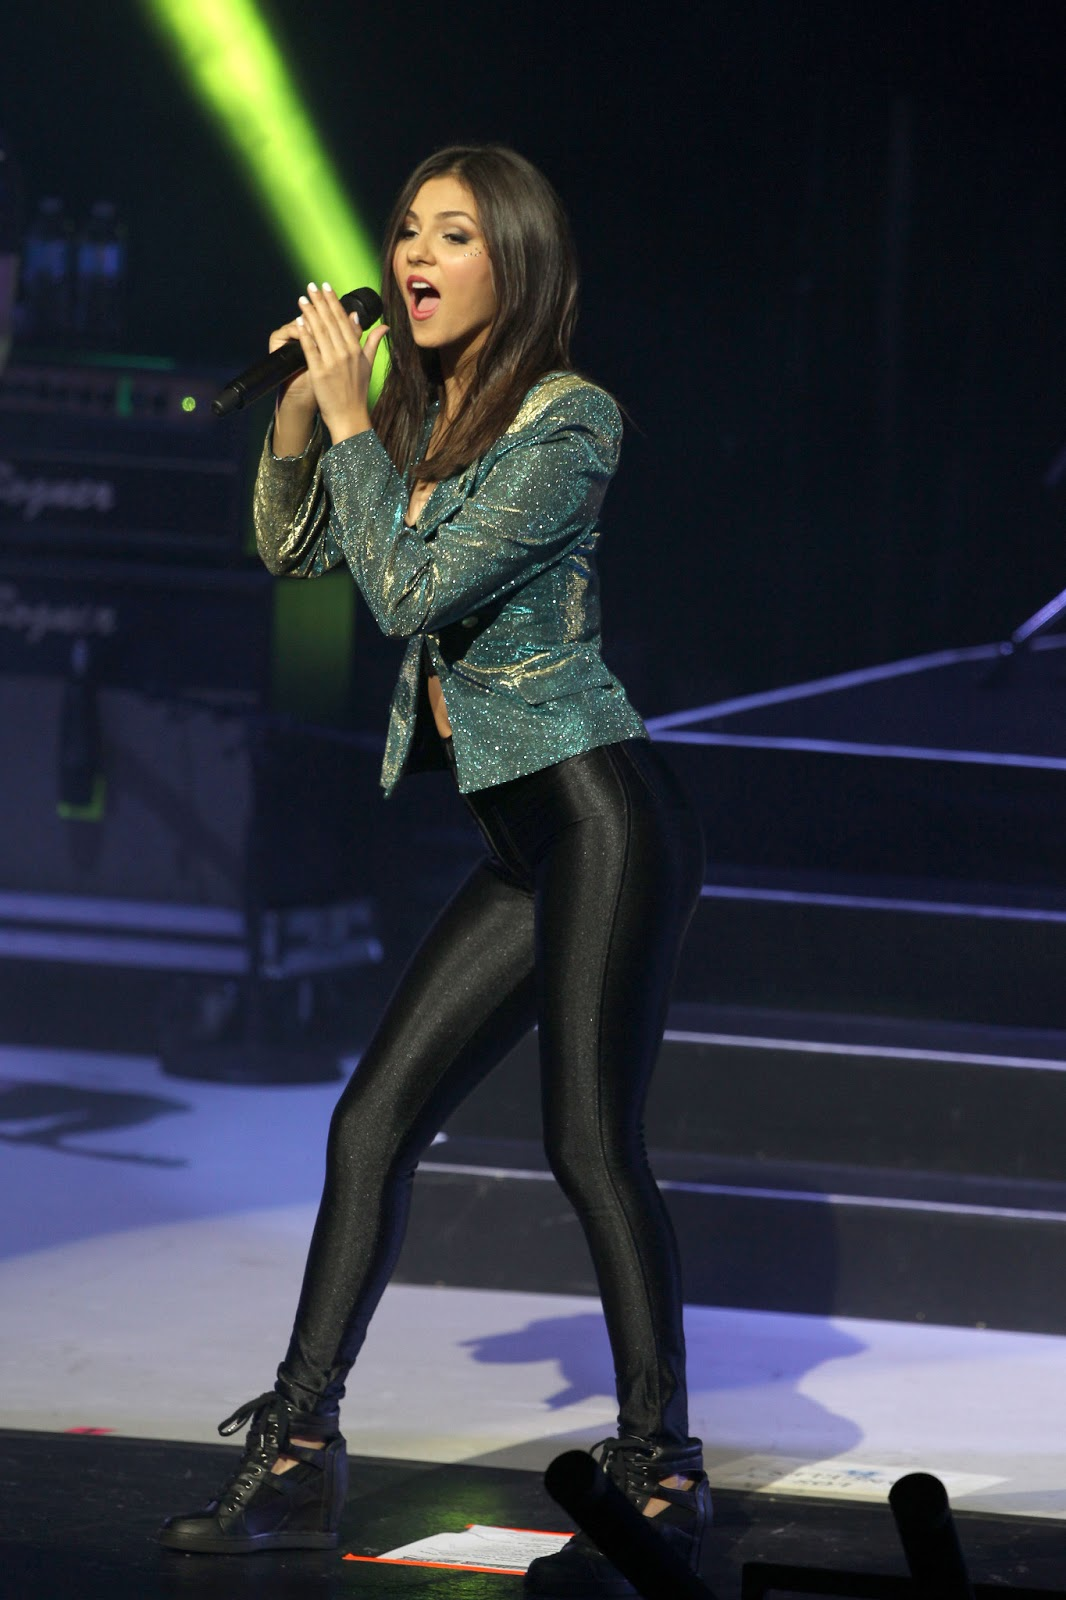 Victoria Justice Concert In Universal City Just Fab Celebs